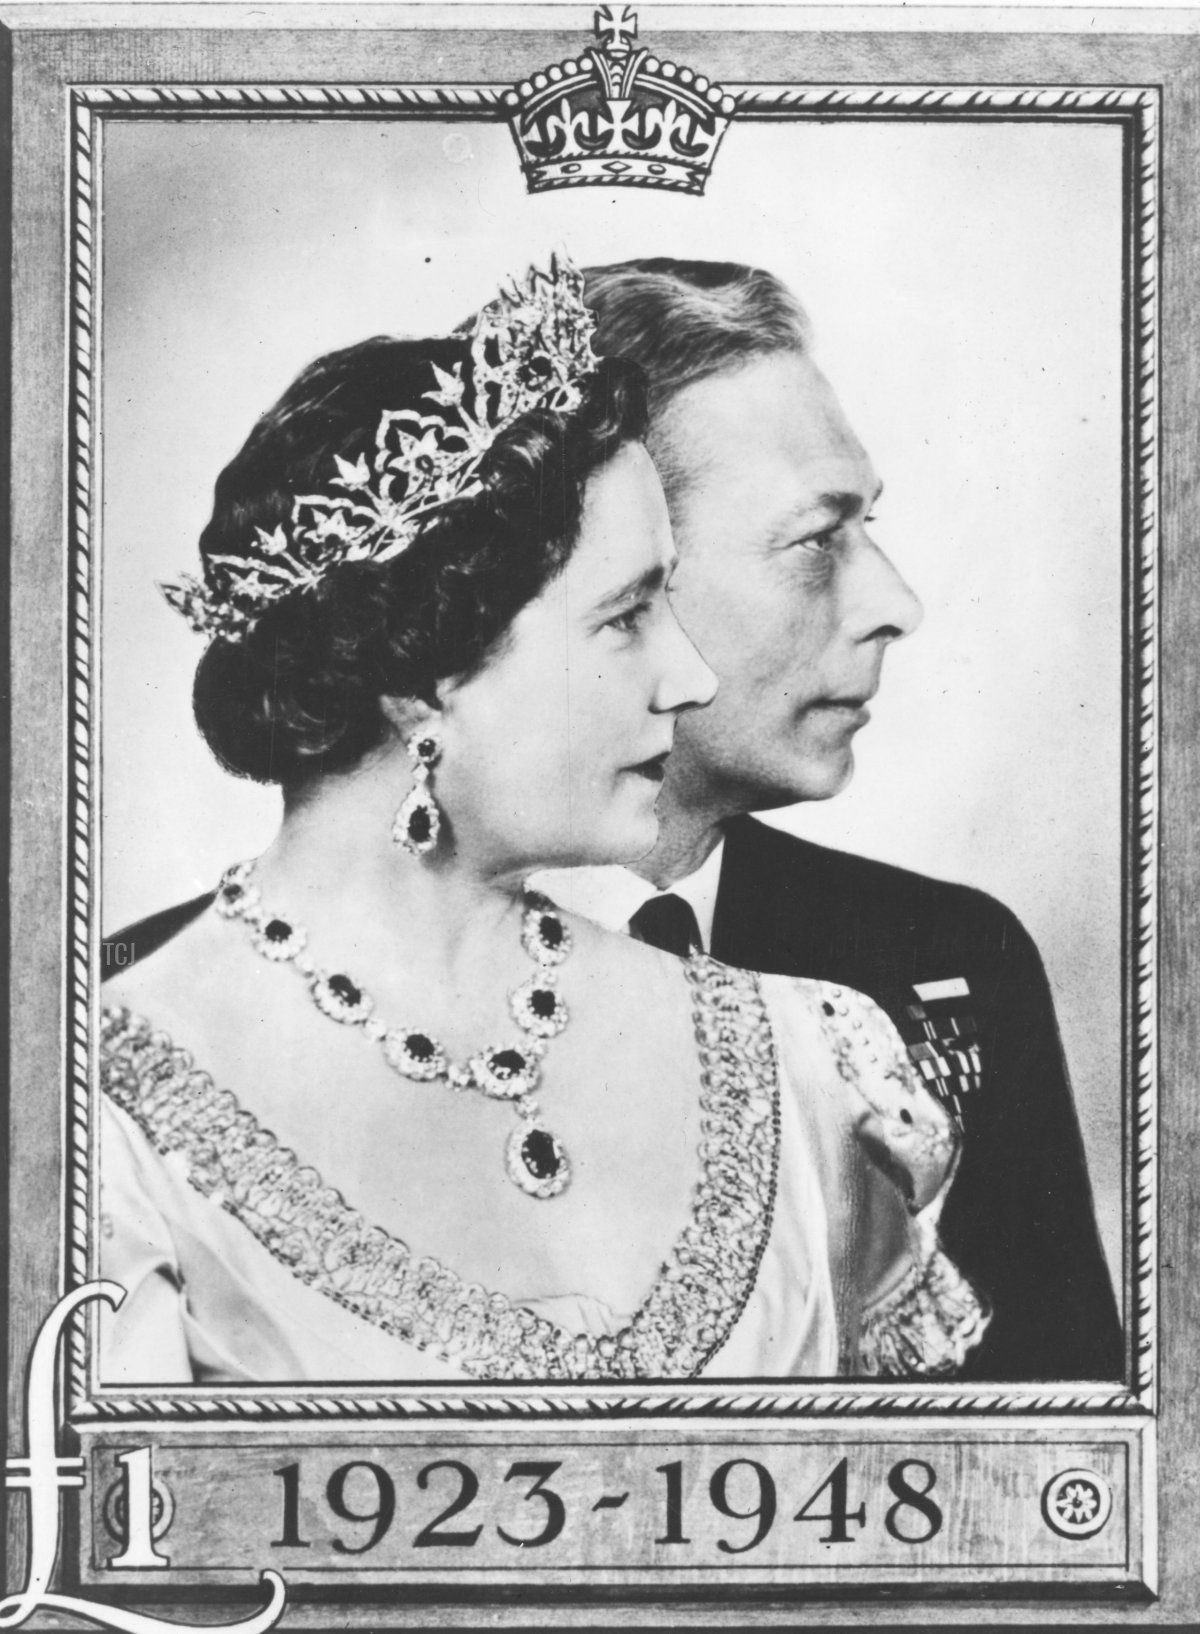 30th April 1948: A £1 stamp featuring King George VI (1895 - 1952) and Queen Elizabeth (1900 - 2002) to commemorate their Silver Wedding anniversary